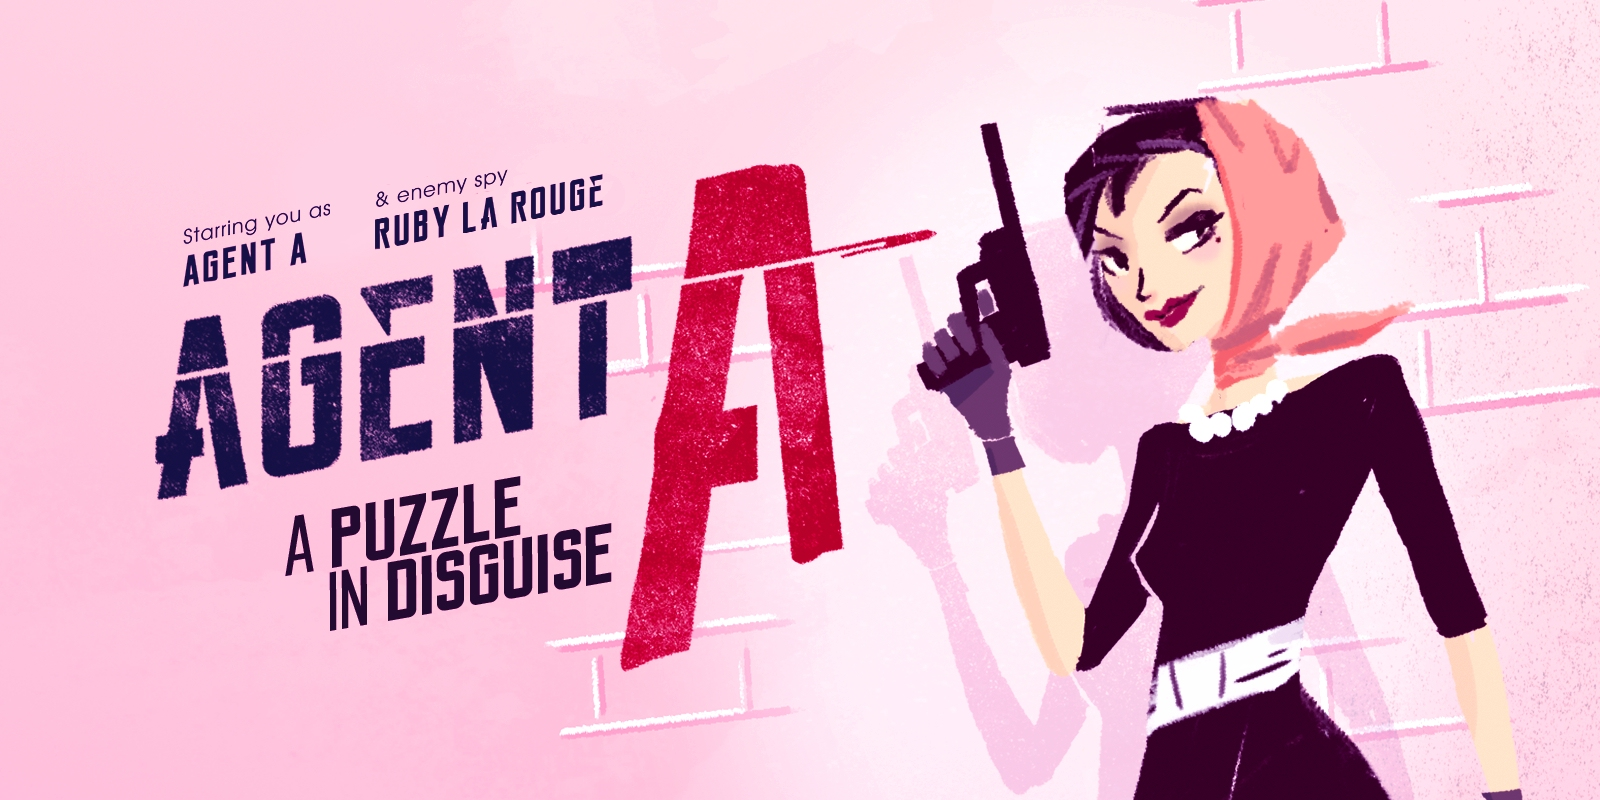 Agent A looks like an intriguing spy-themed take on The Room